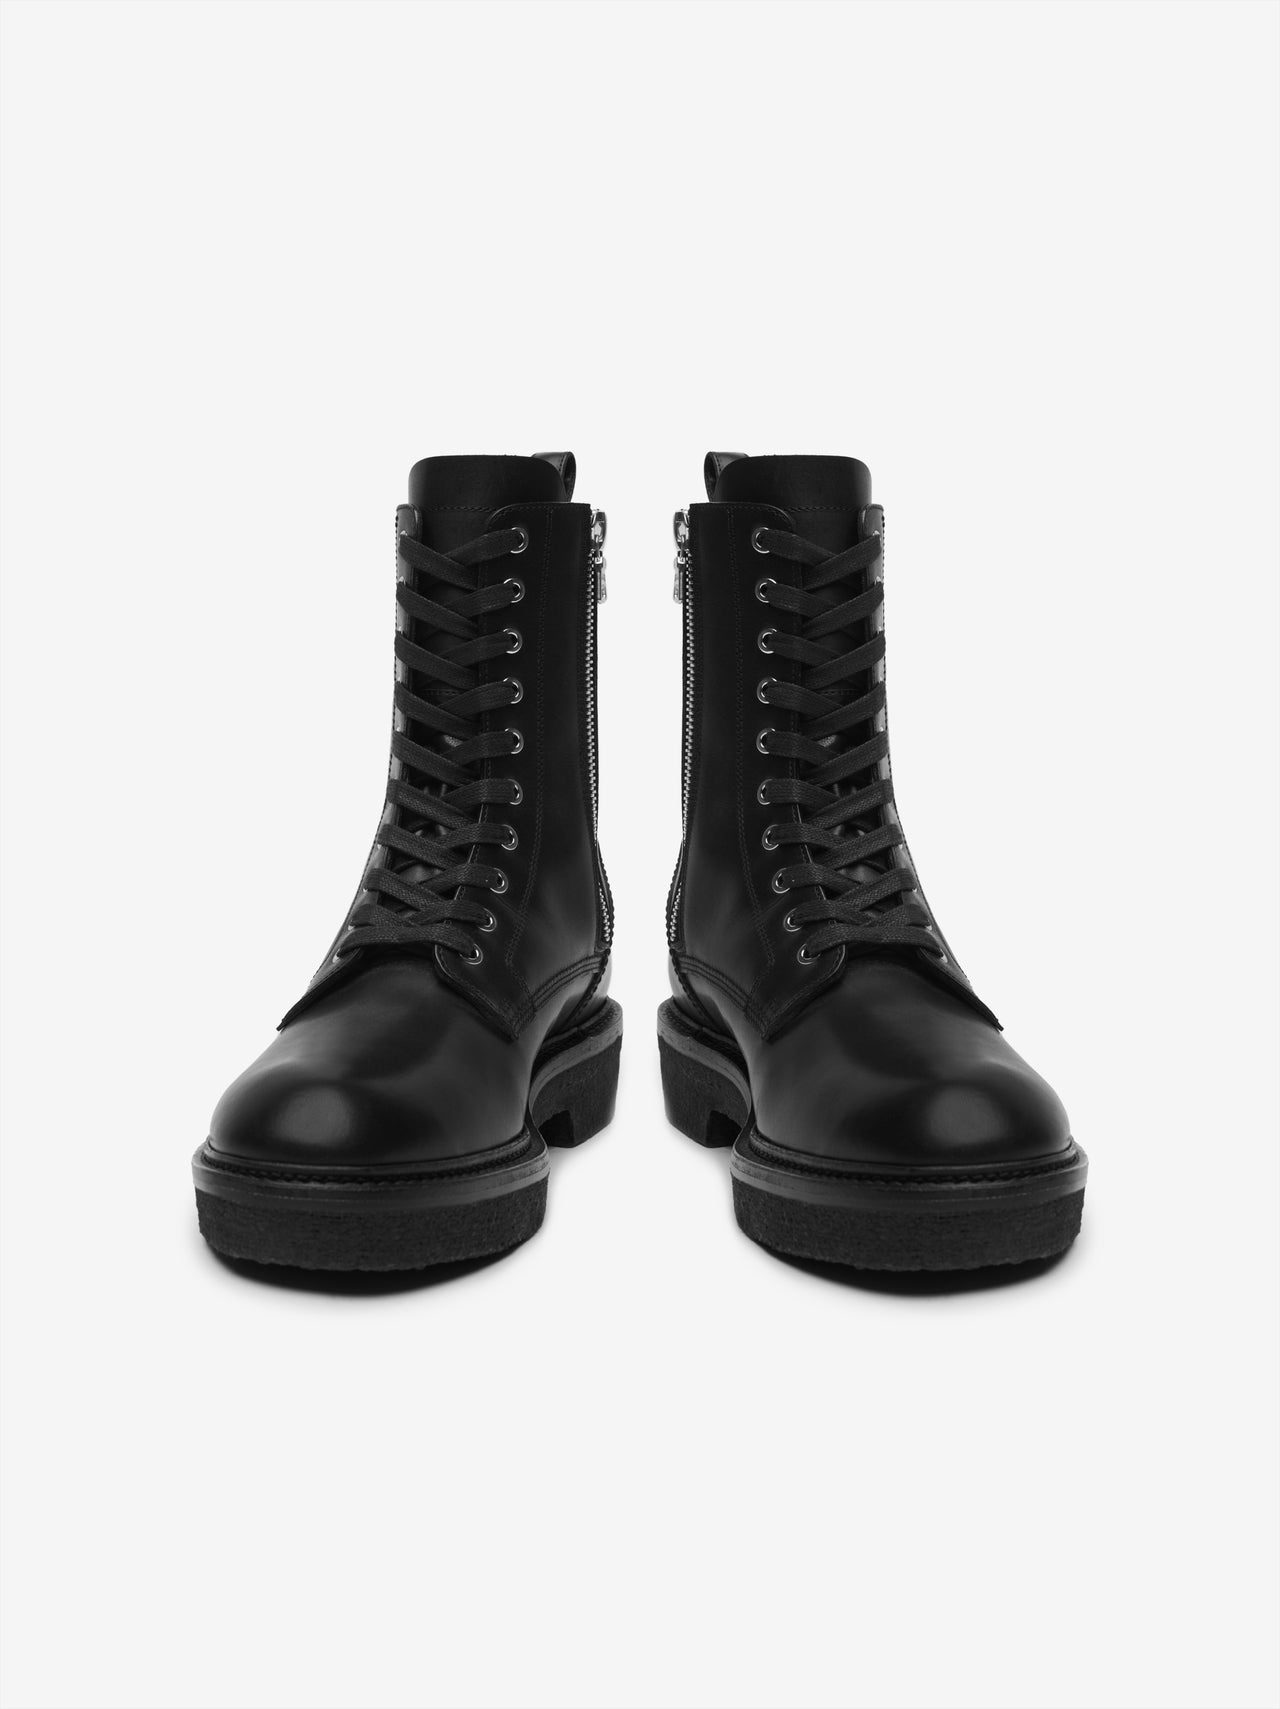 COMBAT CREPE SOLE BOOT - BLACK / BLACK